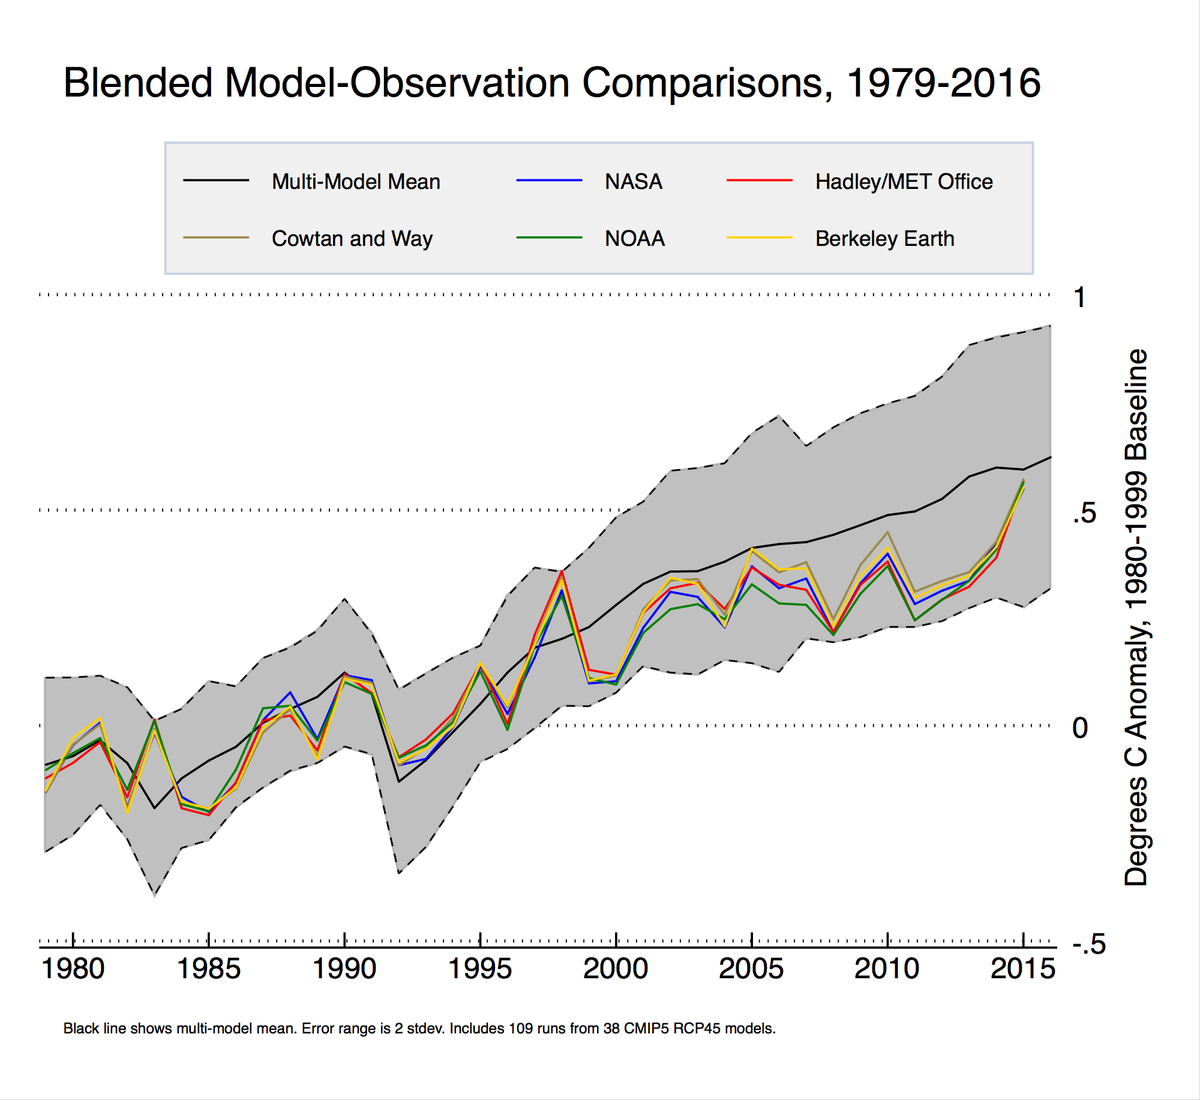 blended land/ocean model-observations comparisons